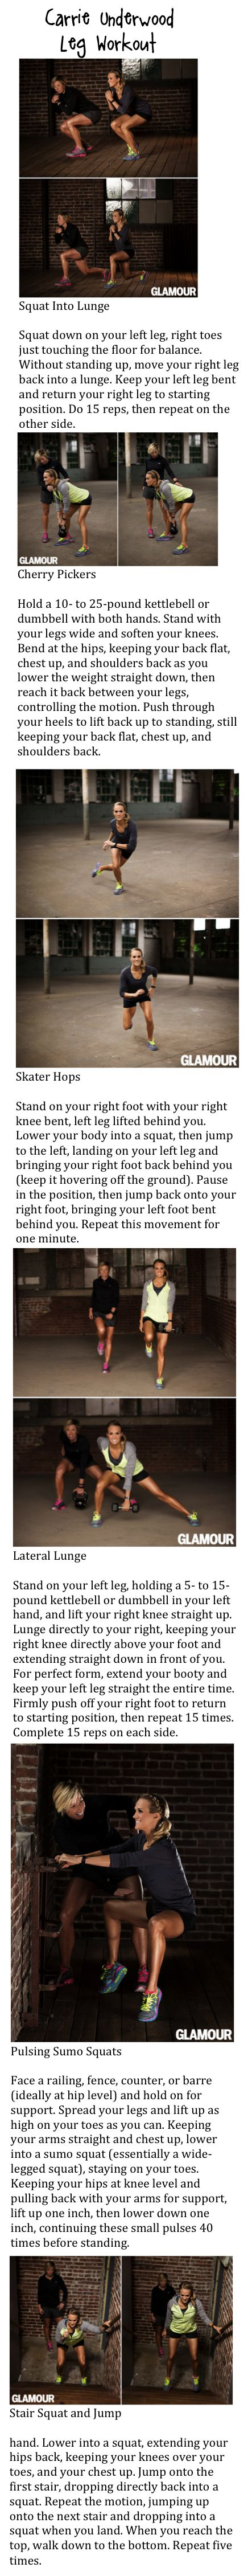 Carrie Underwood Leg Workout #fitspiration